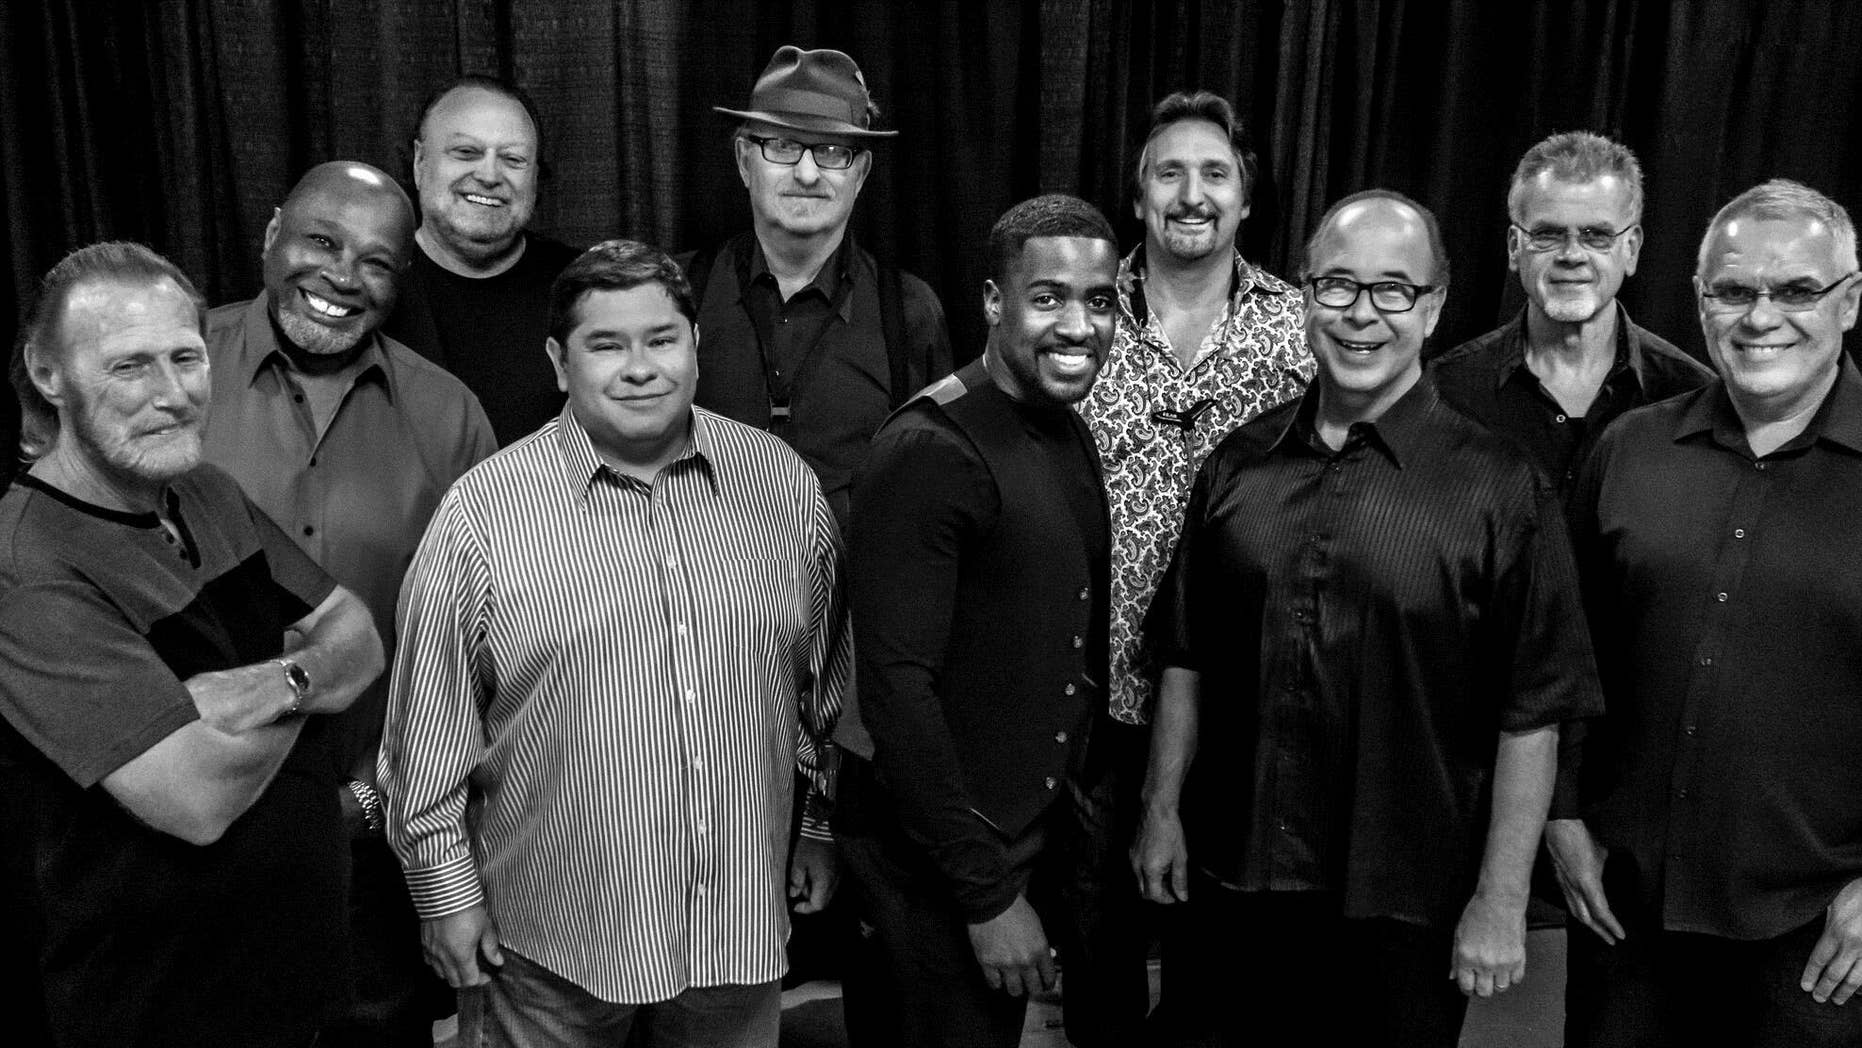 """This Aug. 2016 photo provided by courtesy of Tower of Power/Webster Public Relations, shows the band members from Tower of Power, from left, Rocco Prestia, Roger Smith, Sal Cracchiolo, Adolfo Acosta, Stephen """"Doc"""" Kupka, Marcus Scott, Tom E. Politzer, Emilio Castillo, David Garibaldi, and Jerry Cortez."""